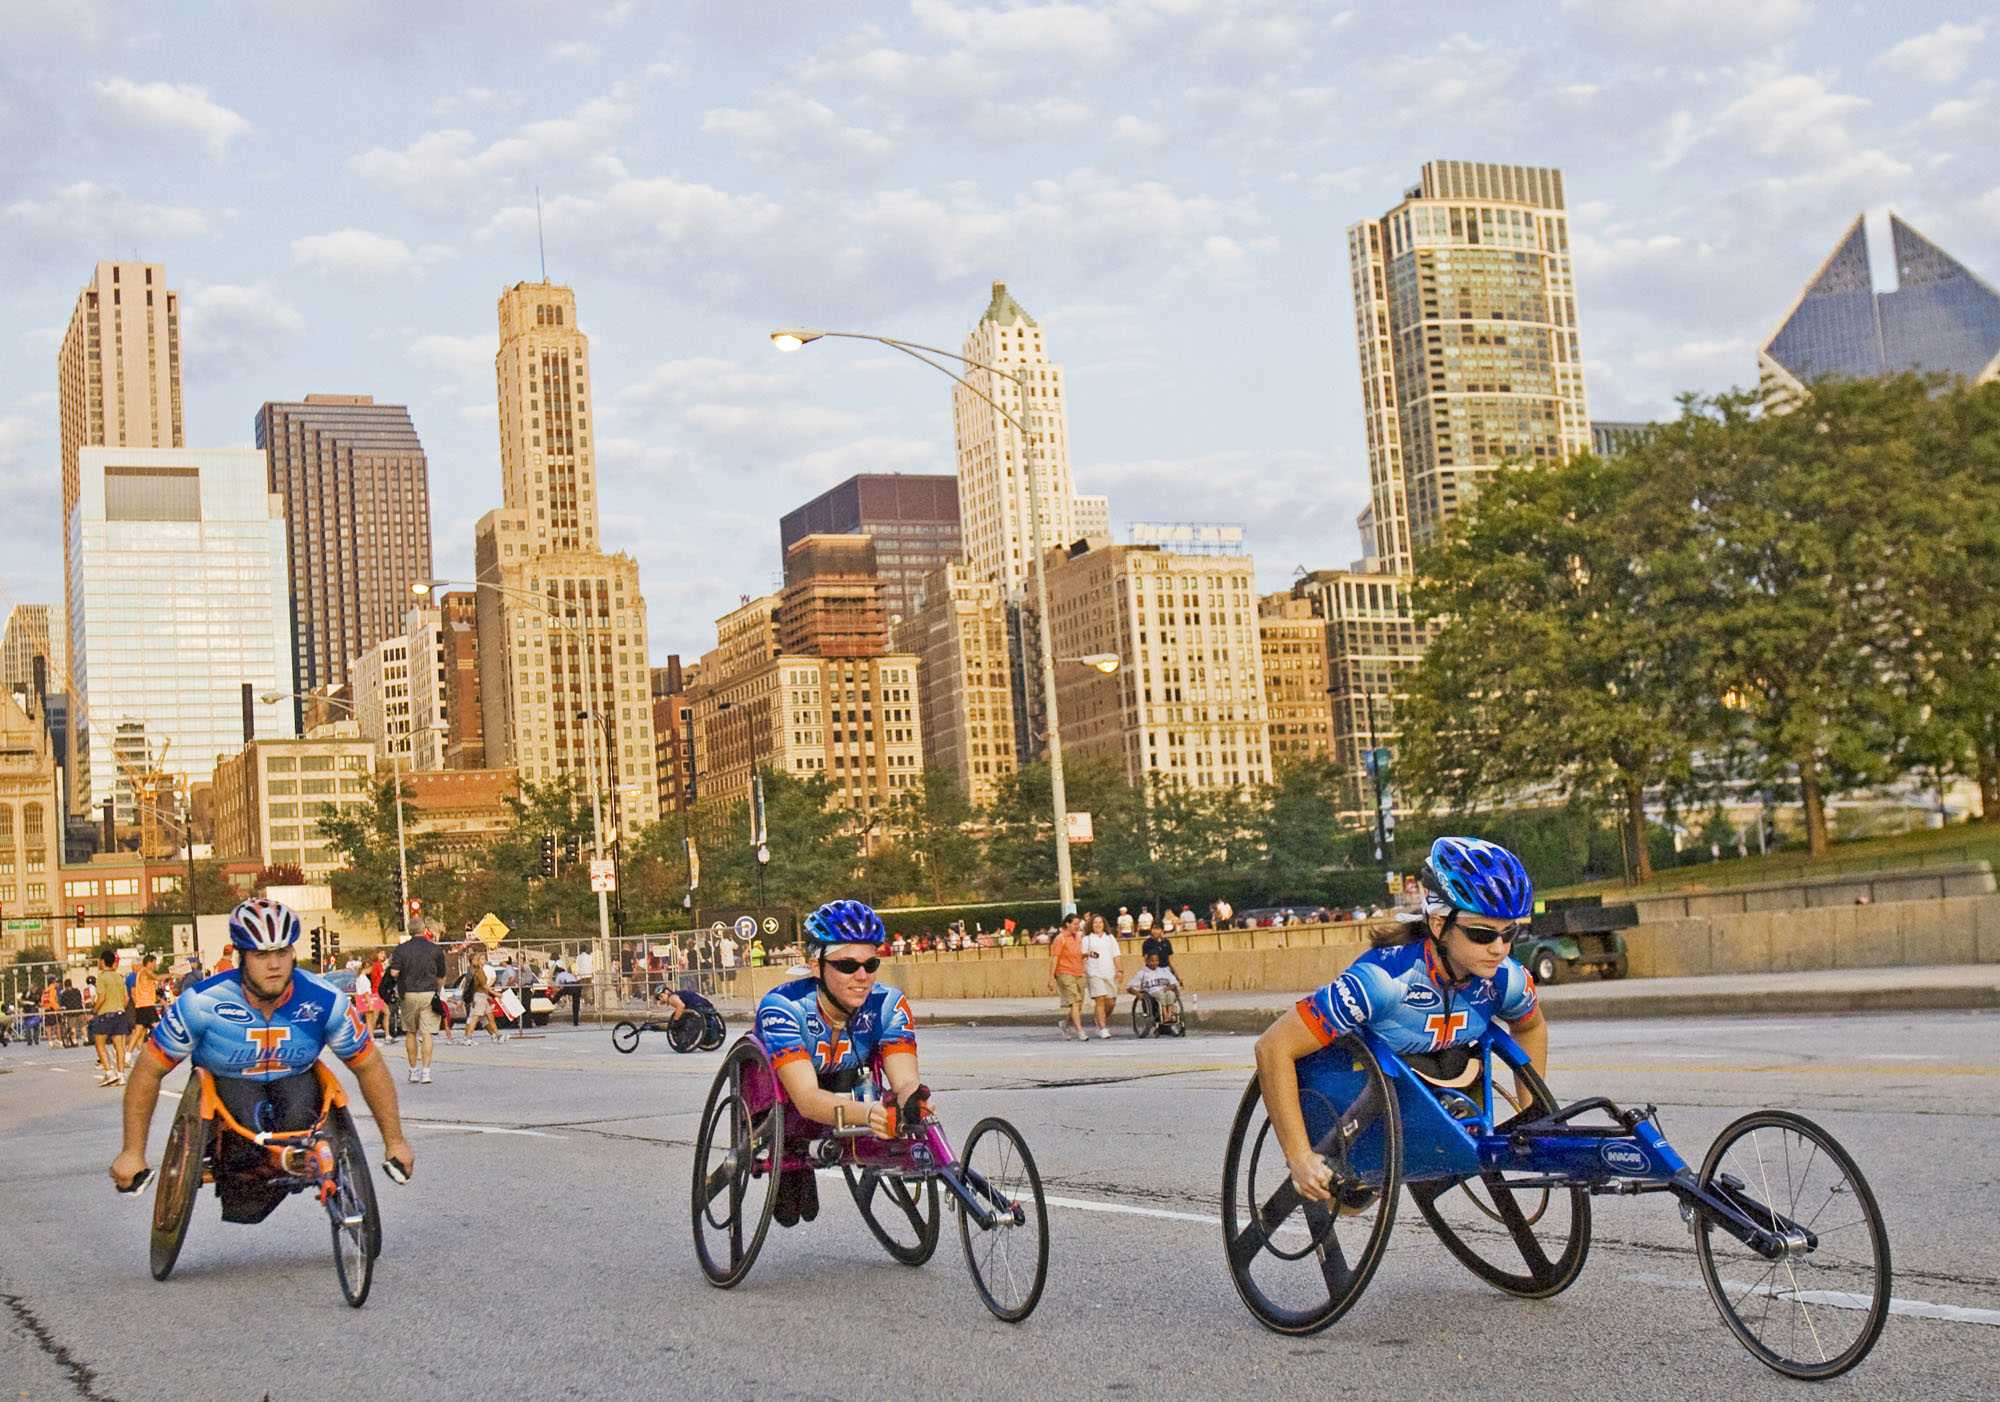 Josh+Birnbaum+The+Daily+Illini%0DIllinois+wheelchair+athletes+Chris+Taylor%2C+left%2C+Amanda+McGrory%2C+center%2C+and+Jessica+Galli+warm+up+before+competing+in+the+30th+Annual+Chicago+Marathon+on+Sunday+morning.++McGrory+won+the+women%27s+wheelchair+race+and+set+a+course+record+with+her+time+of+1%3A45%3A27.++Galli+finished+at+2%3A01%3A23+and+Taylor+came+in+at+2%3A18%3A11.